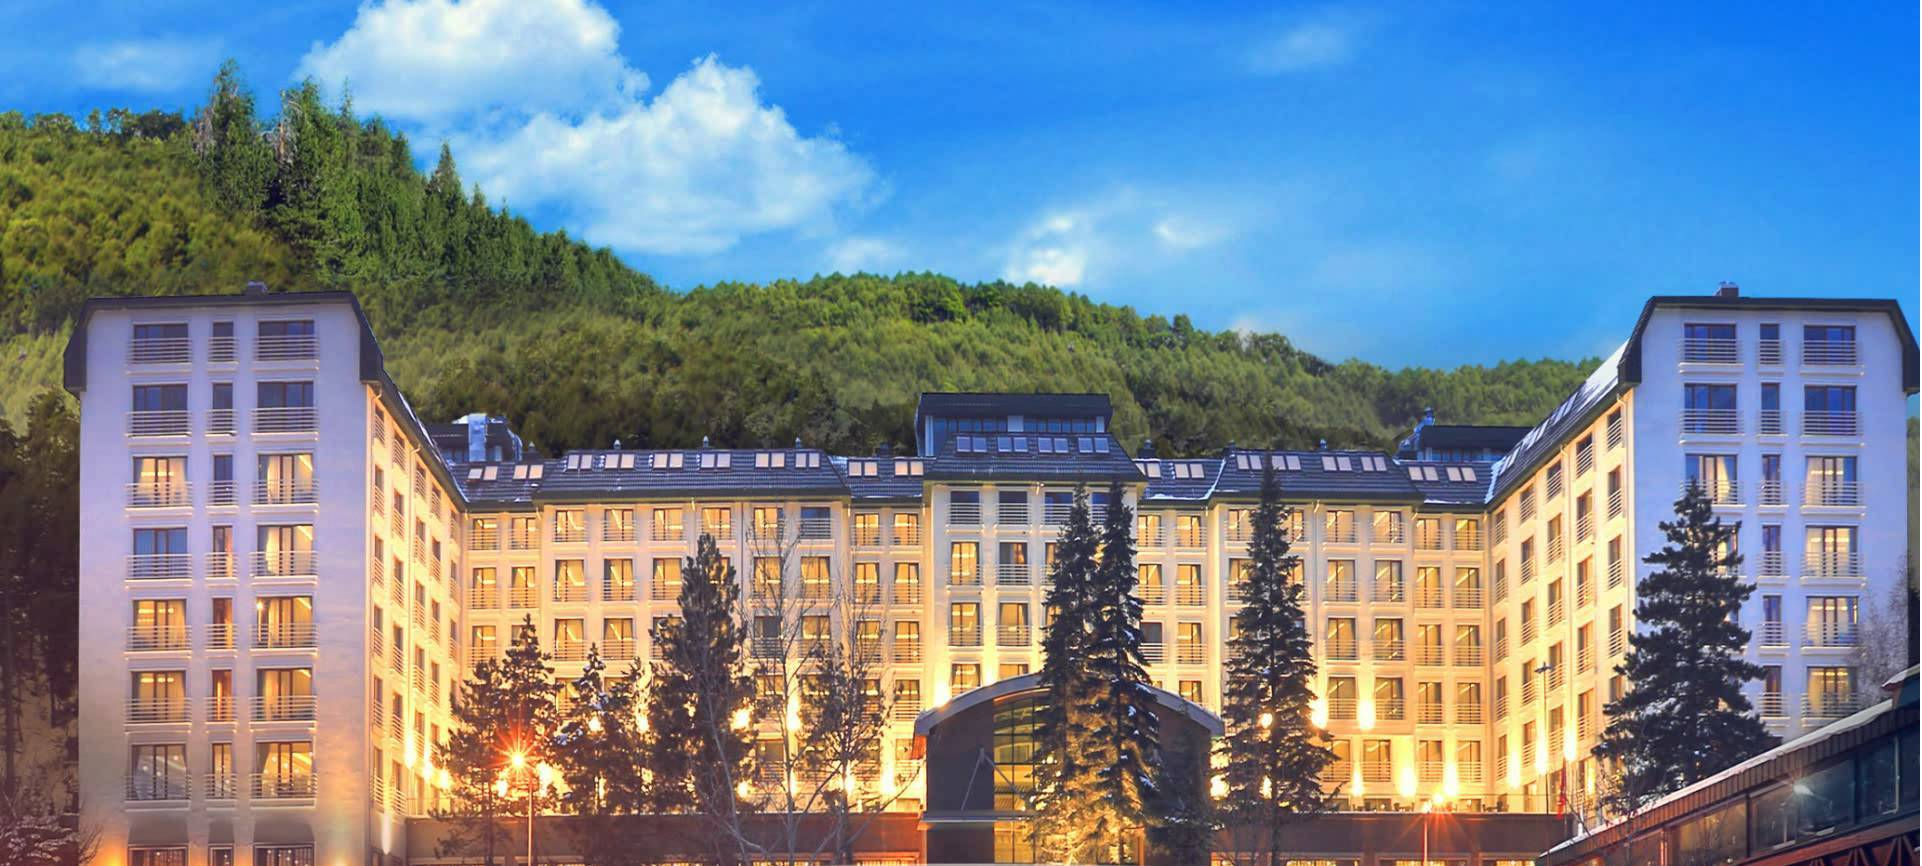 ÇAM TERMAL & SPA HOTEL